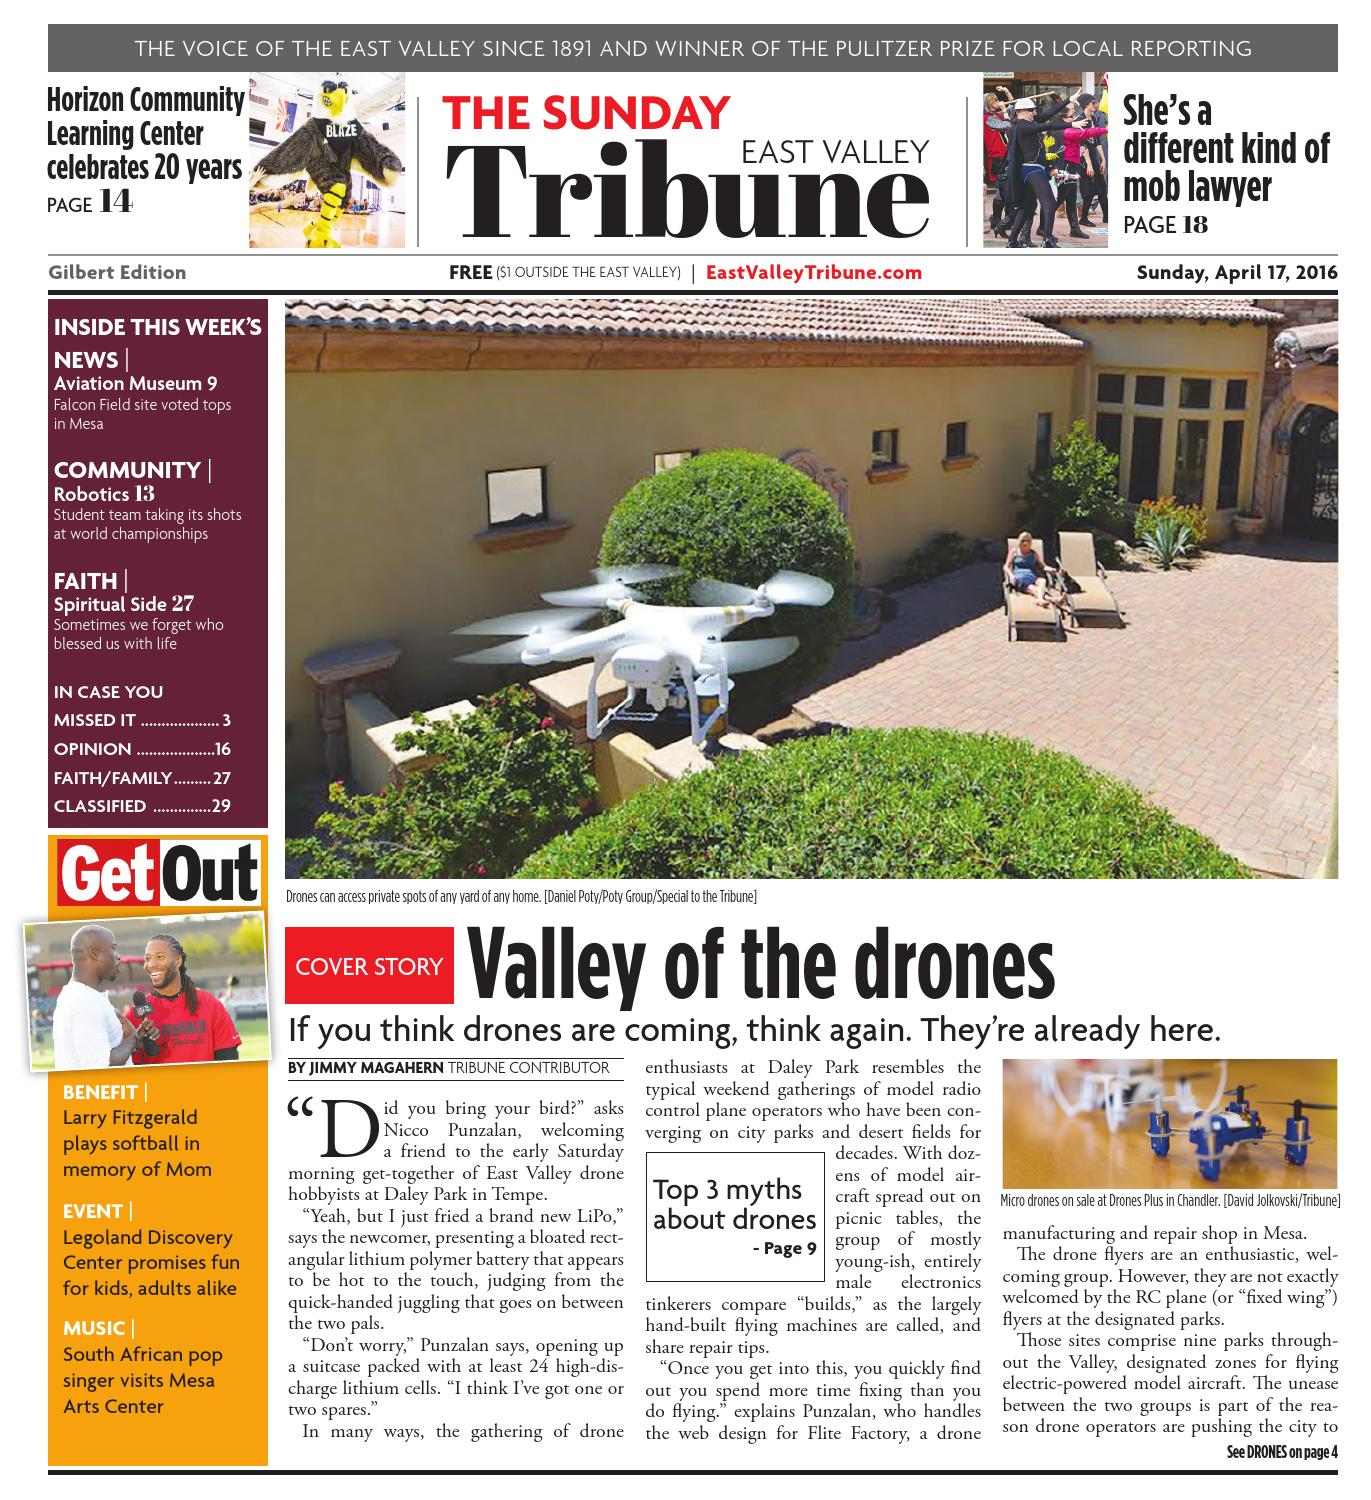 East Valley Tribune Gilbert 04 17 16 By Times Media Group Issuu Electrical Diagram Dixie Chopper Lawn Mower Parts Online